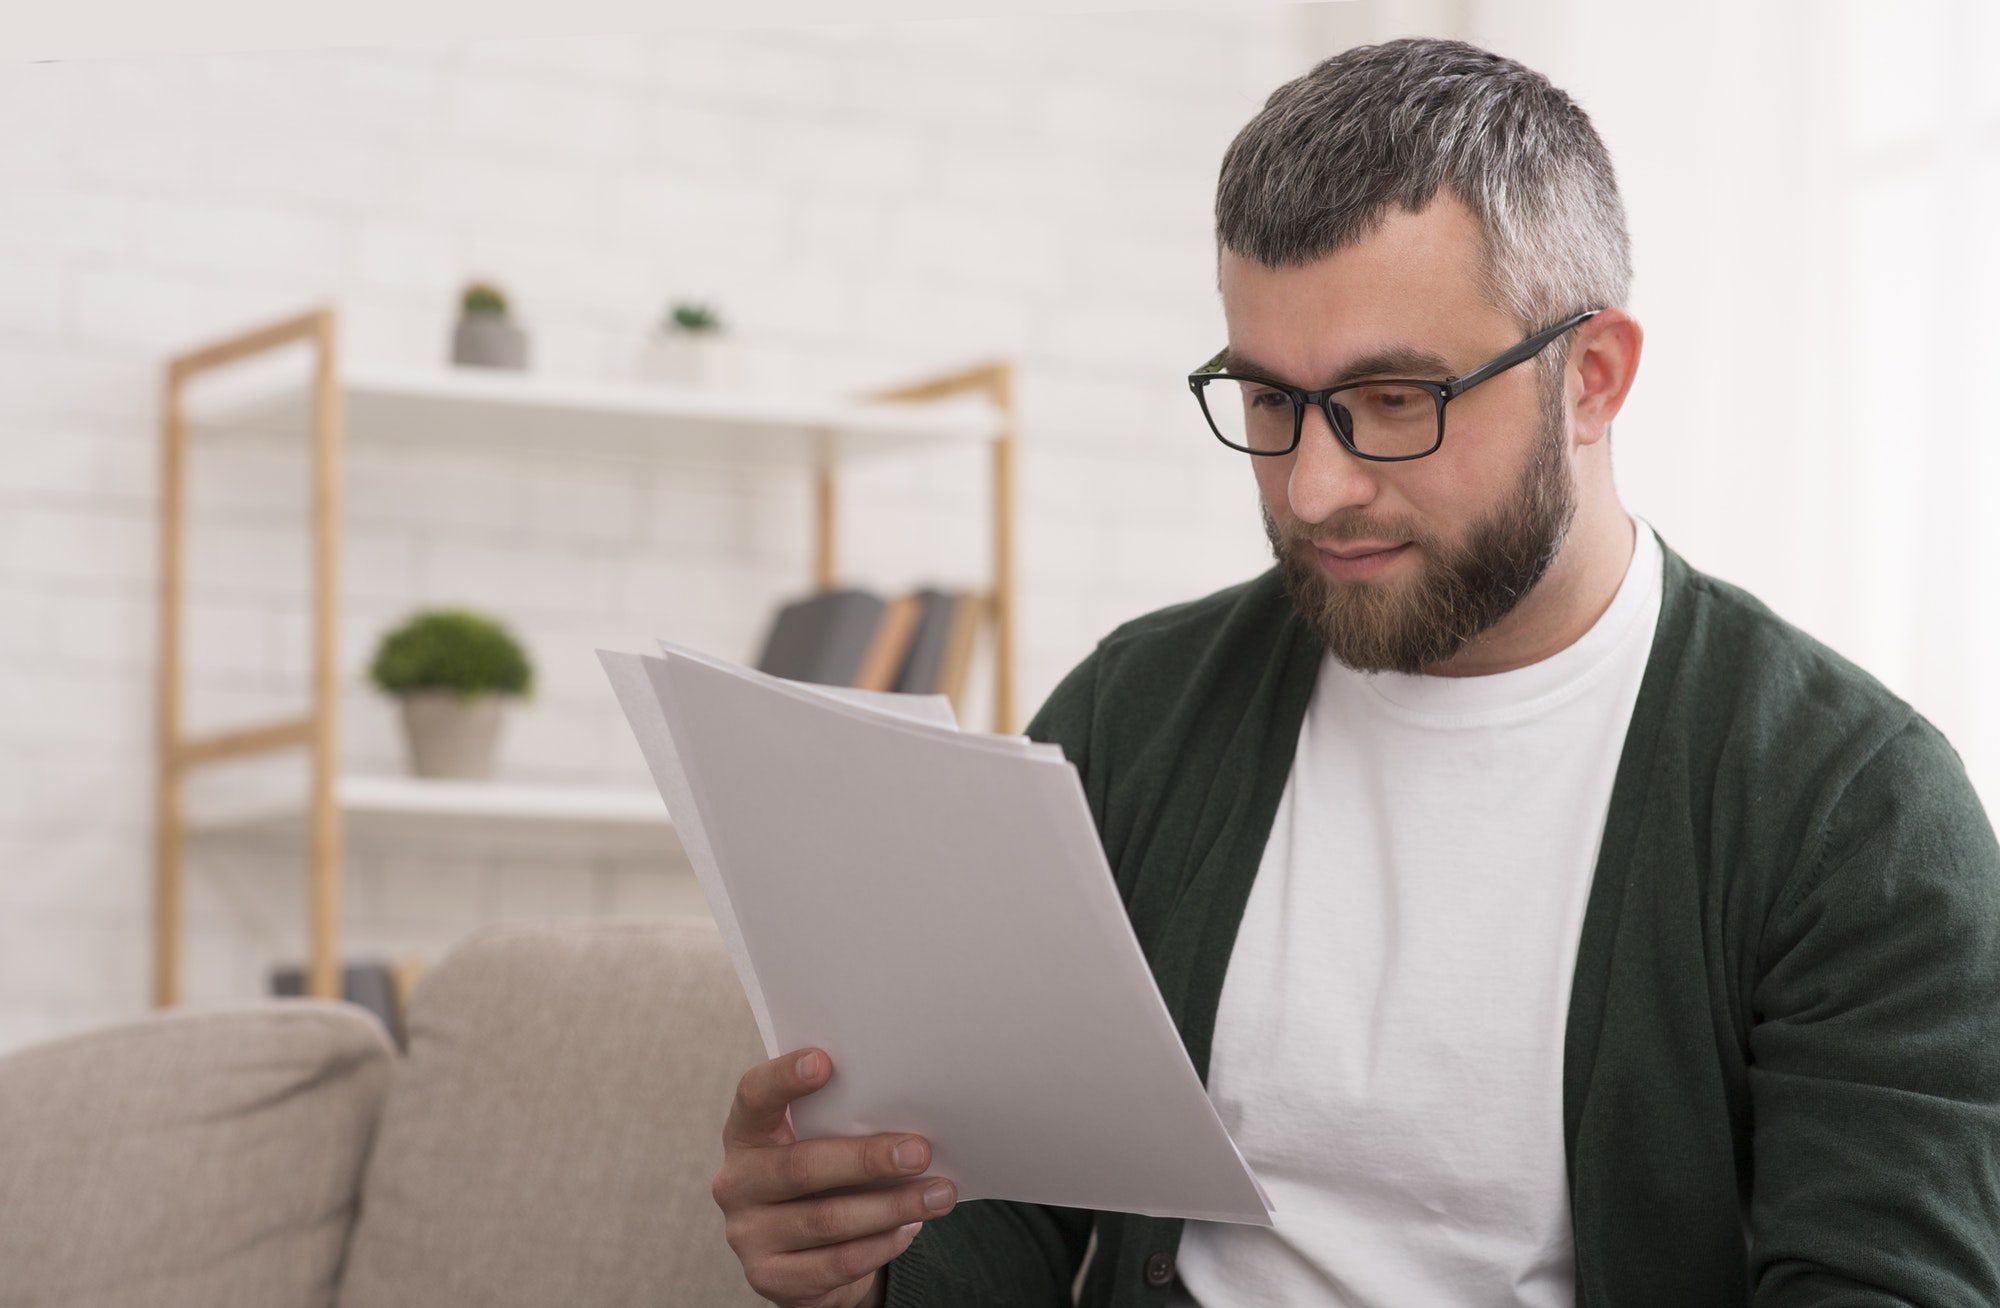 Concentrated man reading printed article, education at home